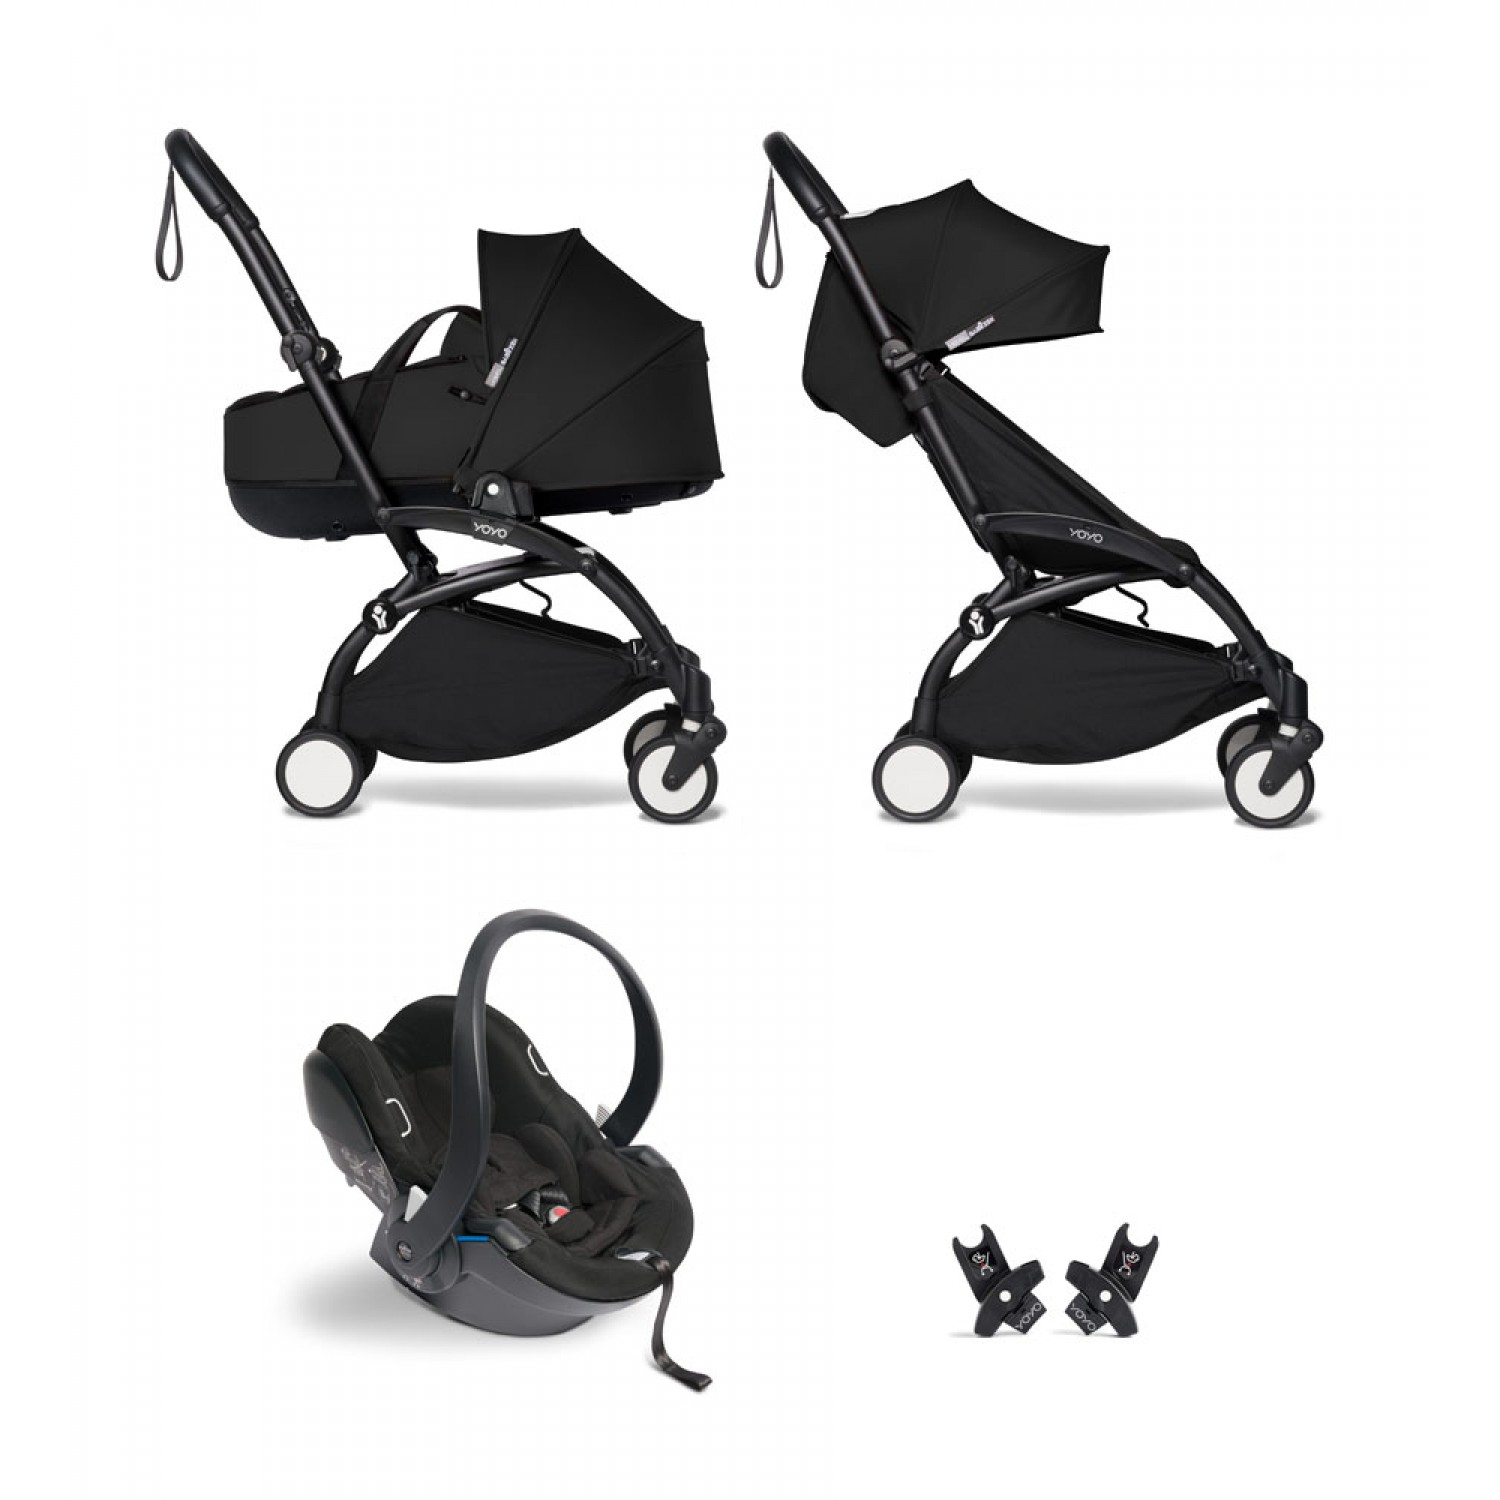 All-in-one BABYZEN stroller YOYO2 bassinet, car seat and 6+  Black Frame | Black